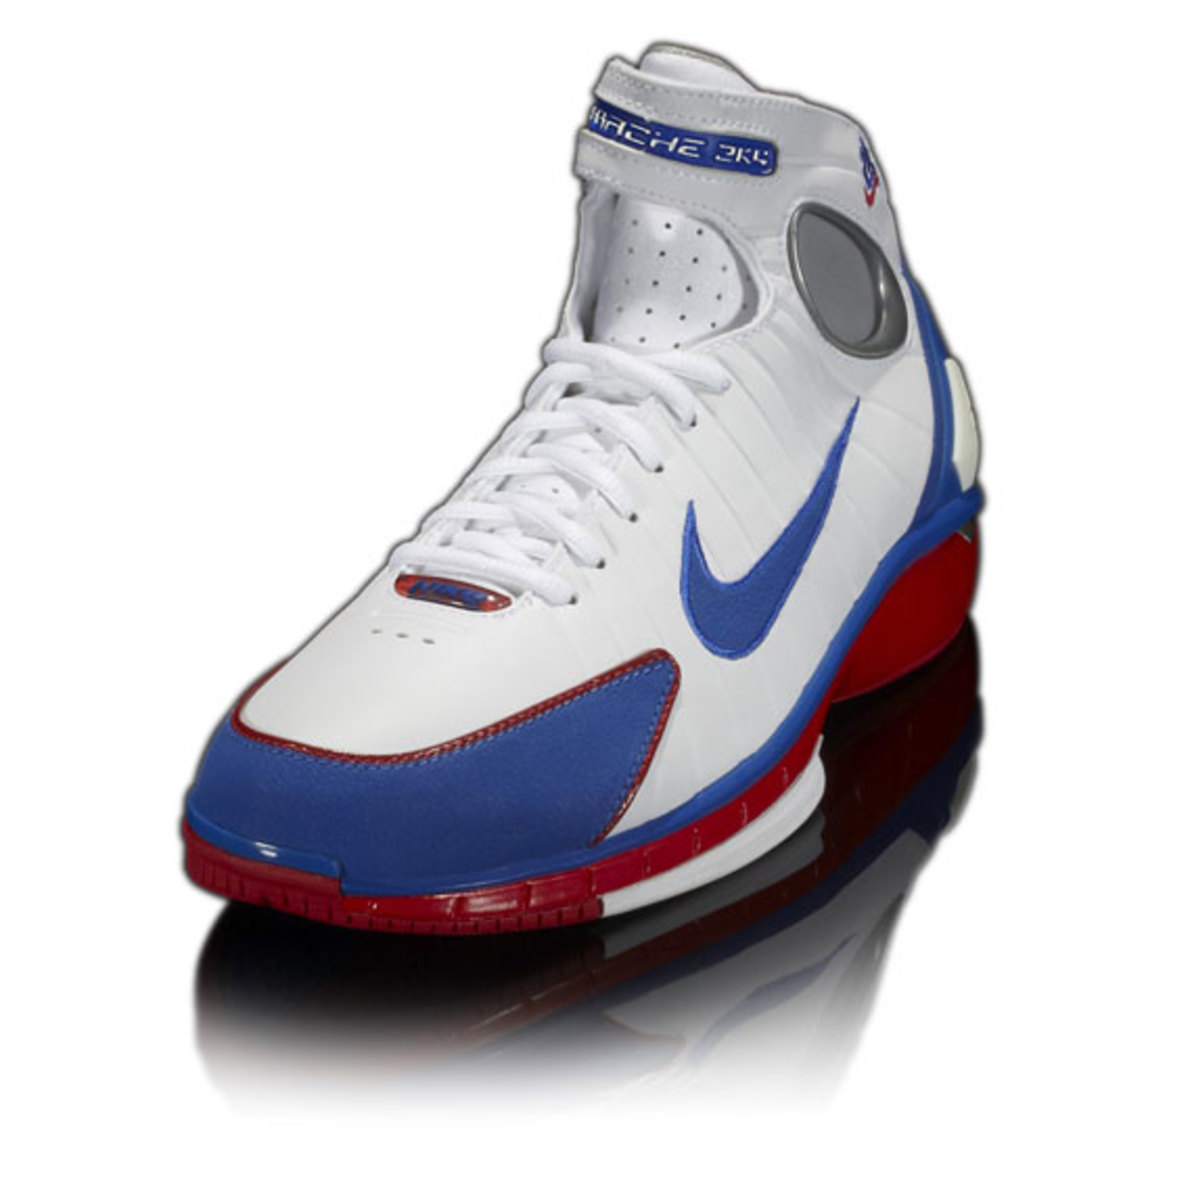 nike-basketball-1992-2012-nike-air-zoom-huarache-28